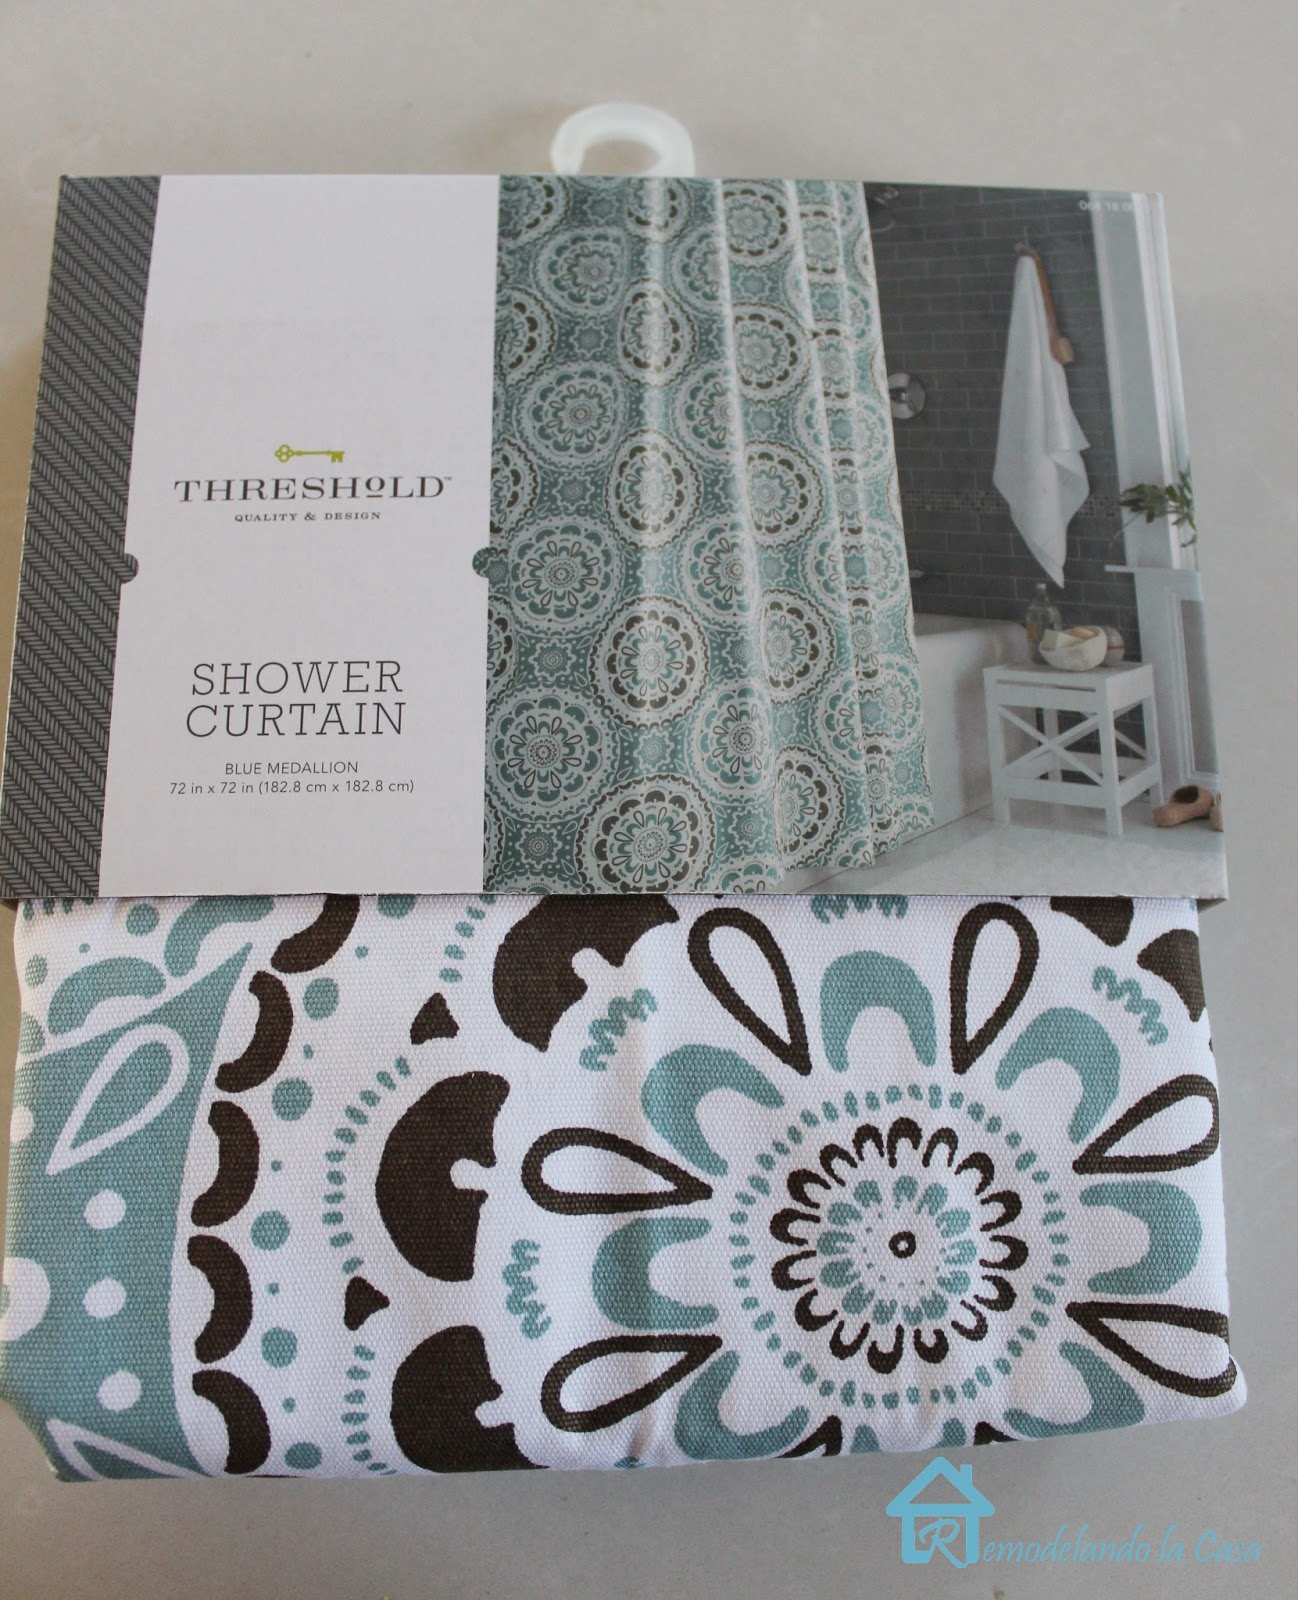 me introduce you to it target new medallion shower curtain i love it too price wise it was a more reasonable alternative to cover all six chairs